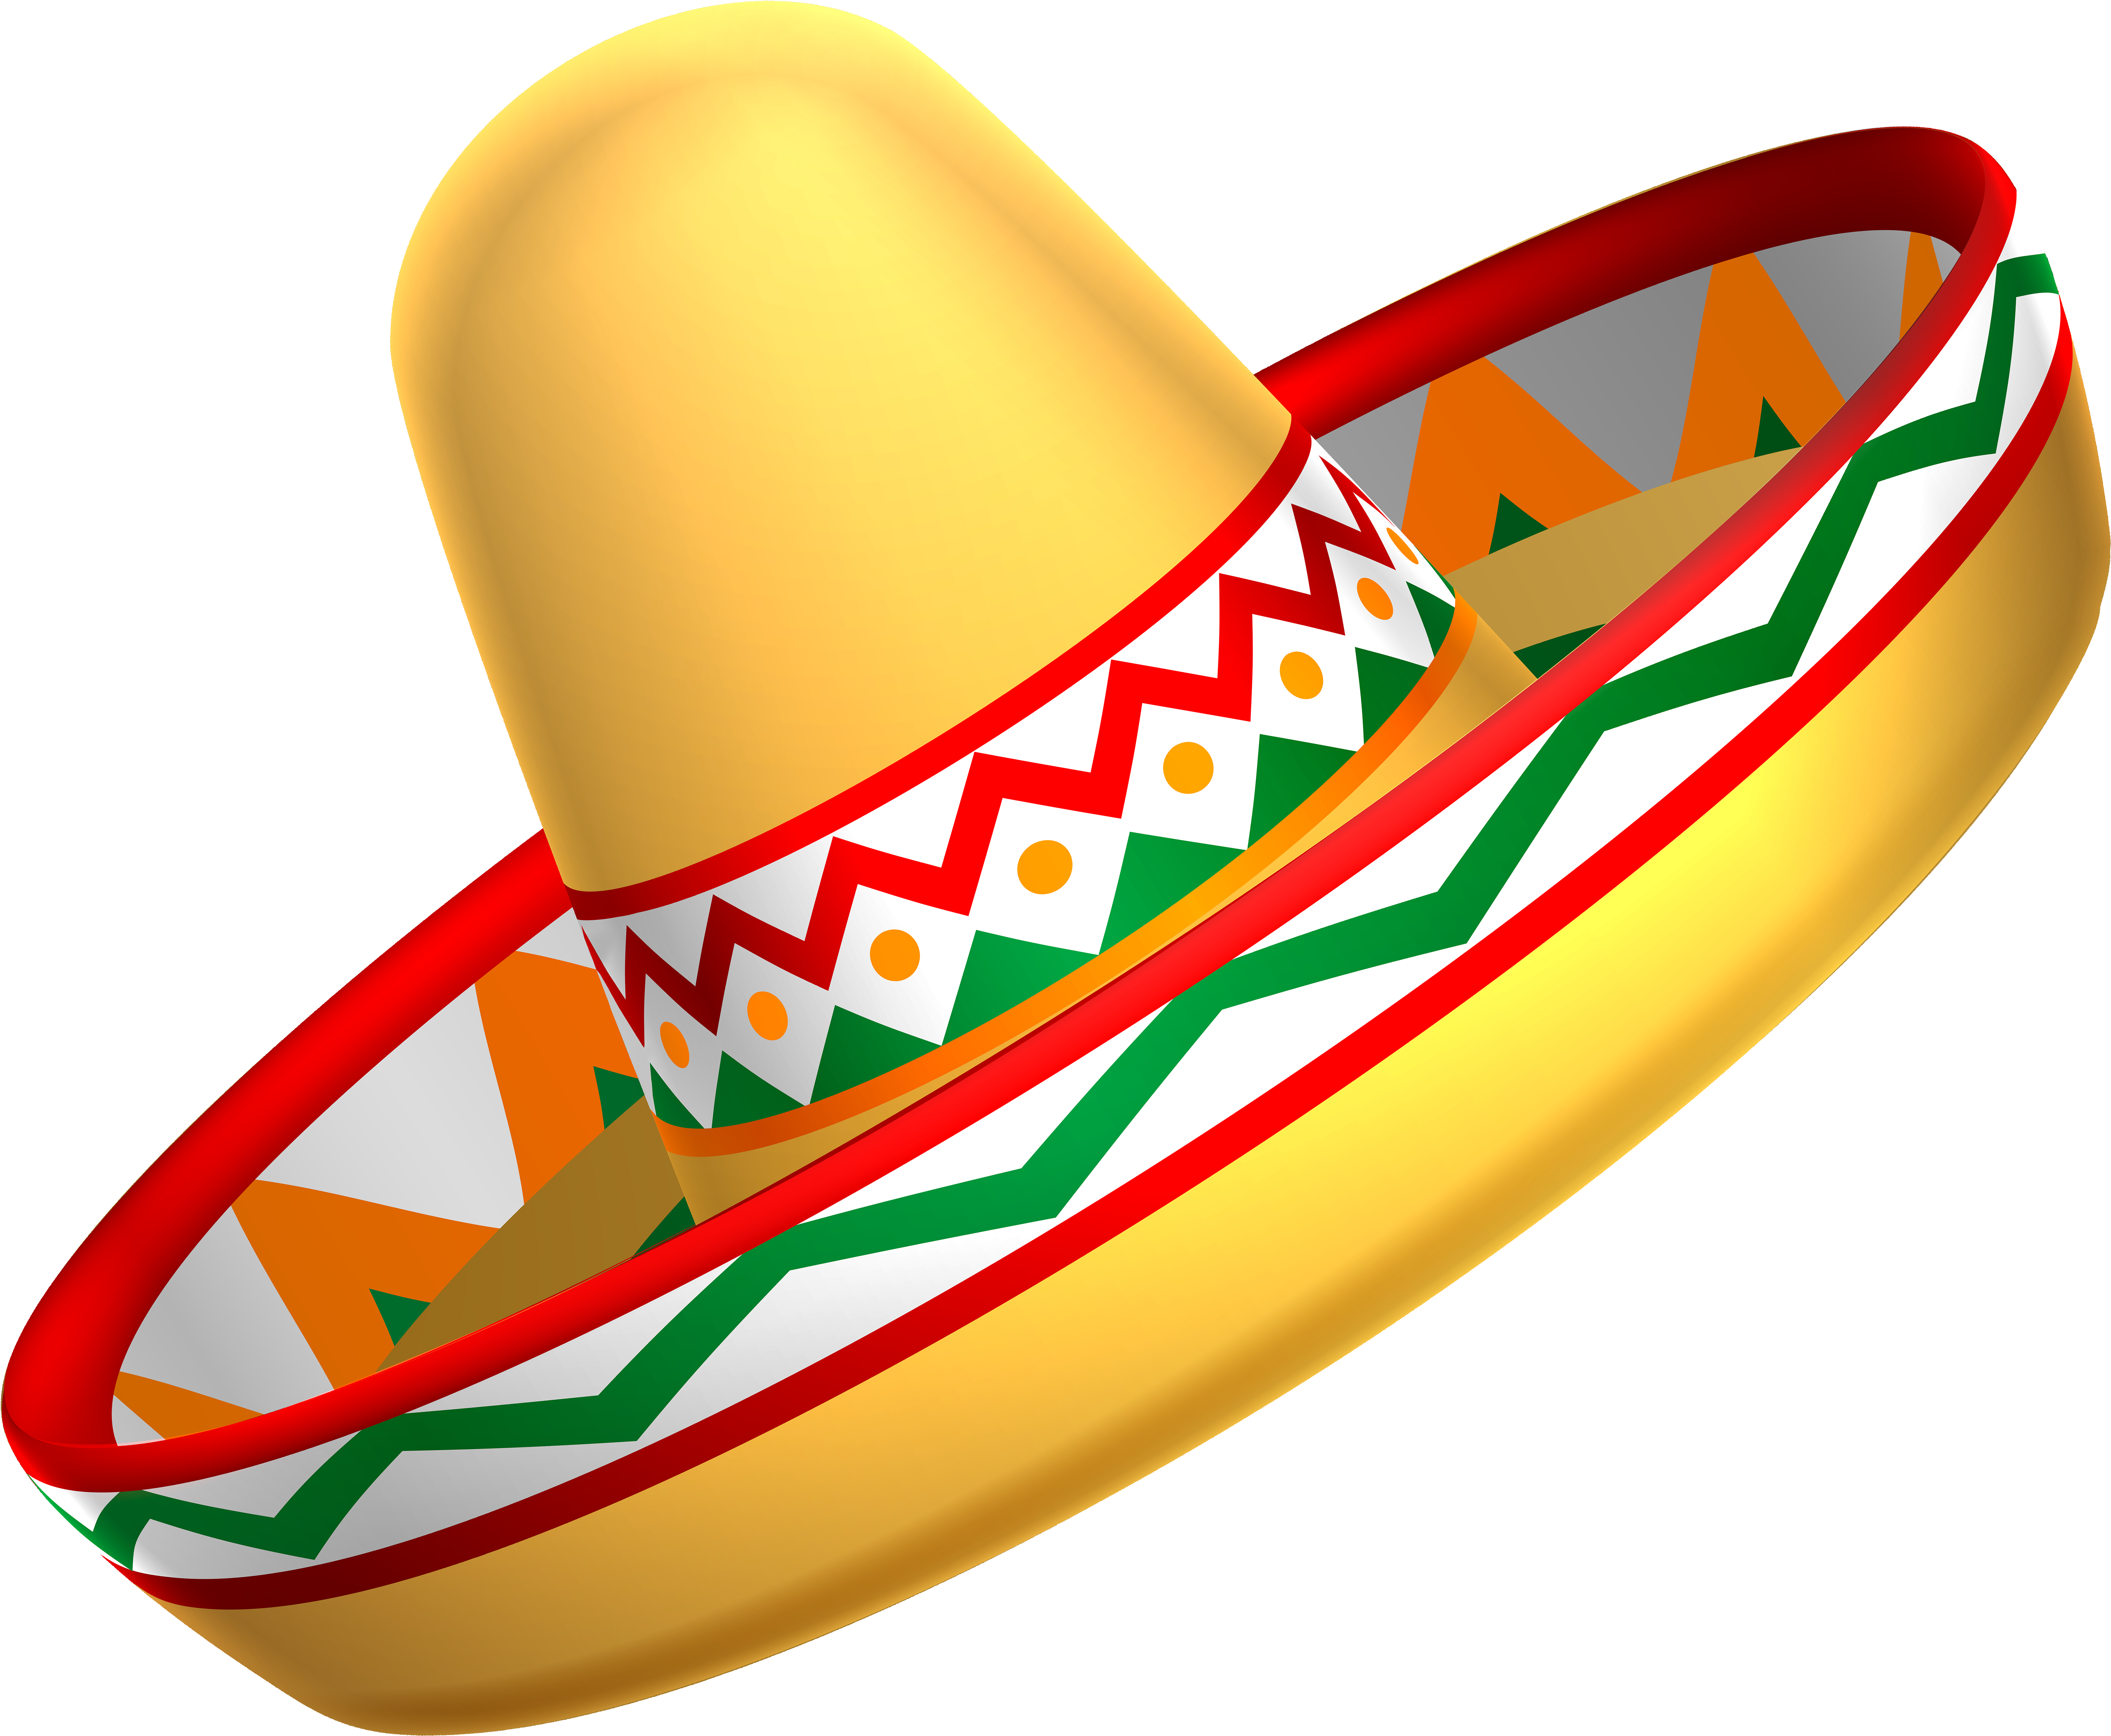 Free Png Mexican Sombrero Hat Png Images Transparent.